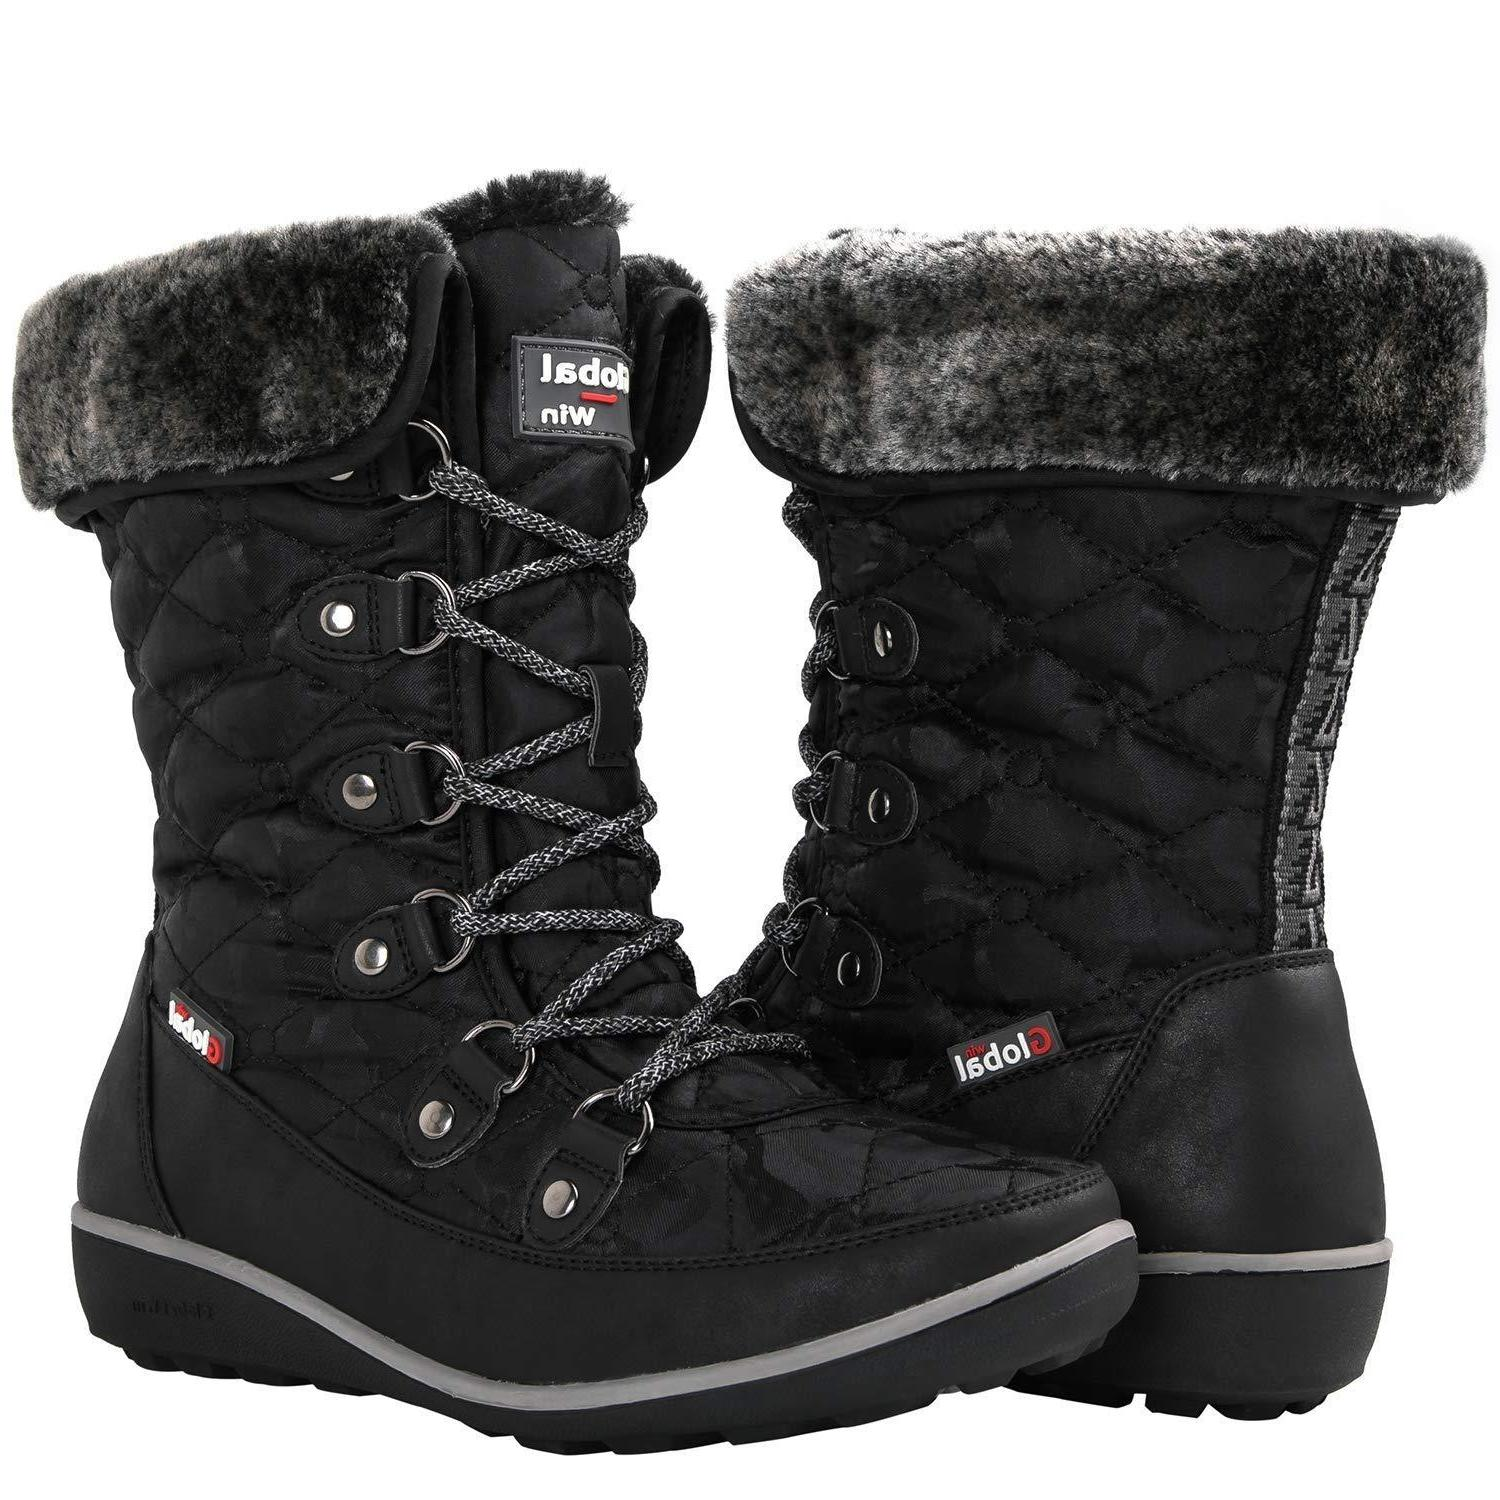 globalwin women s 1839 winter snow boots